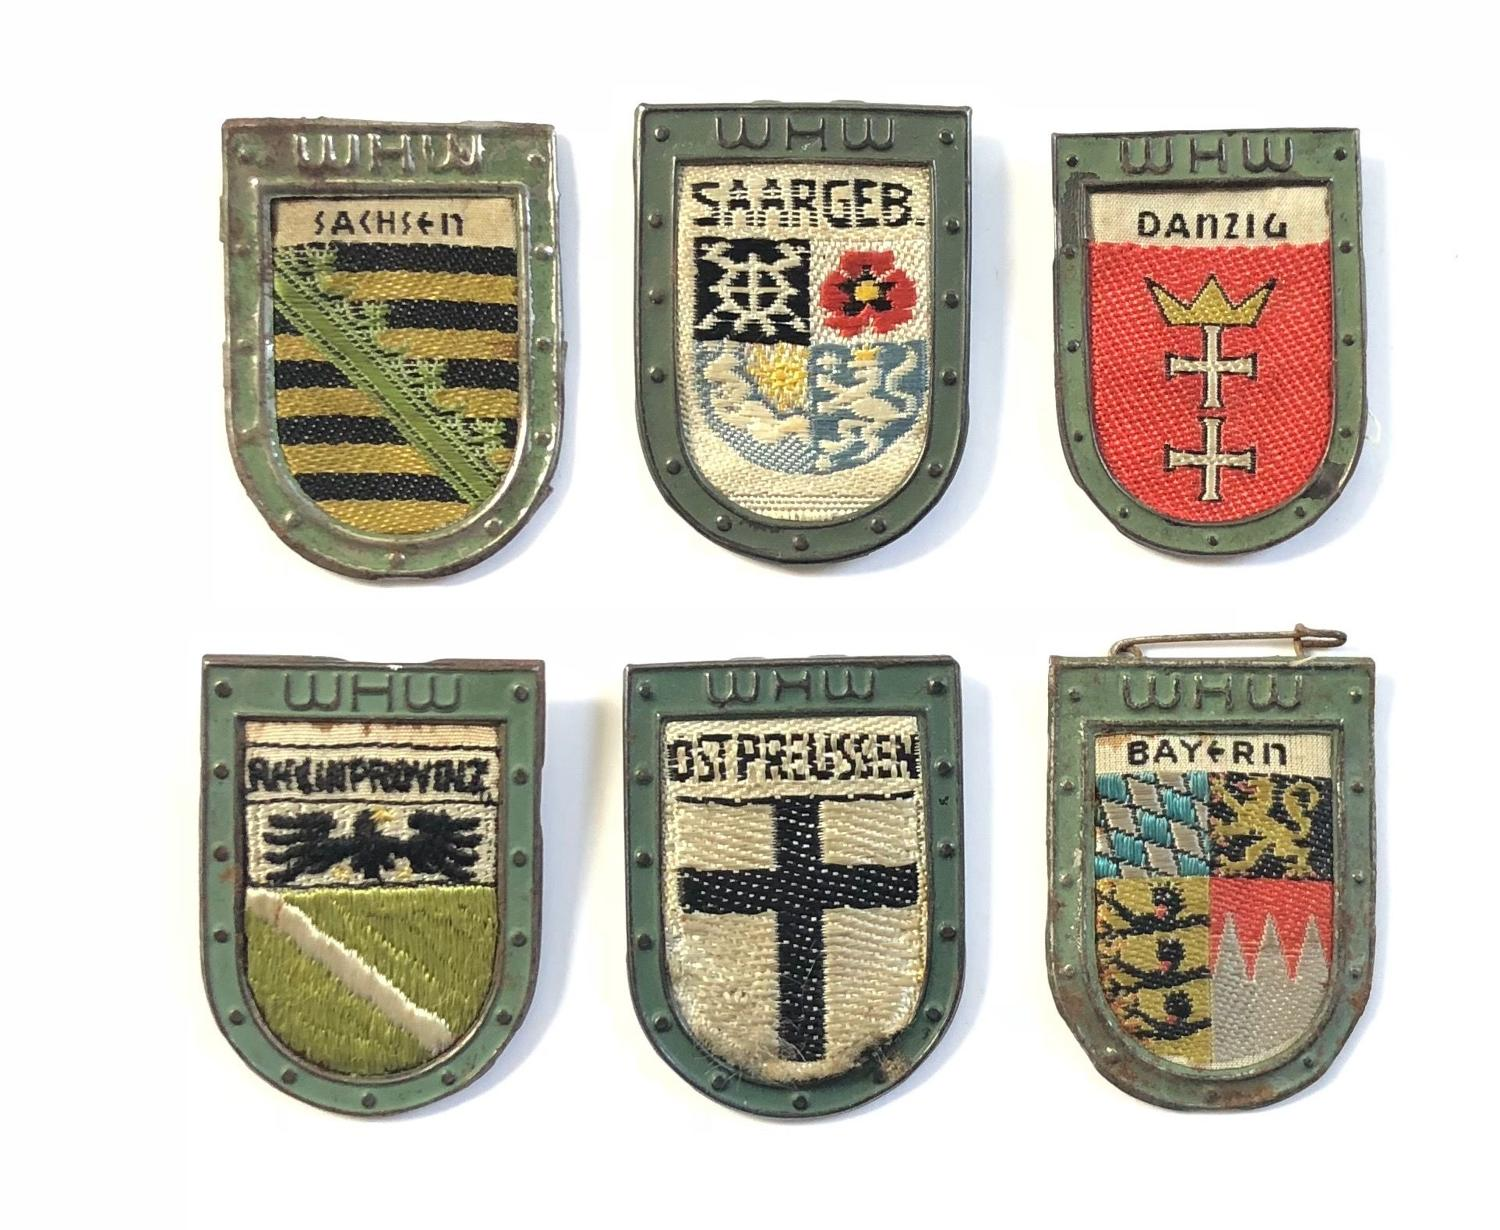 WW2 Nazi German Winter Help Fundraising Tinnie Badges.